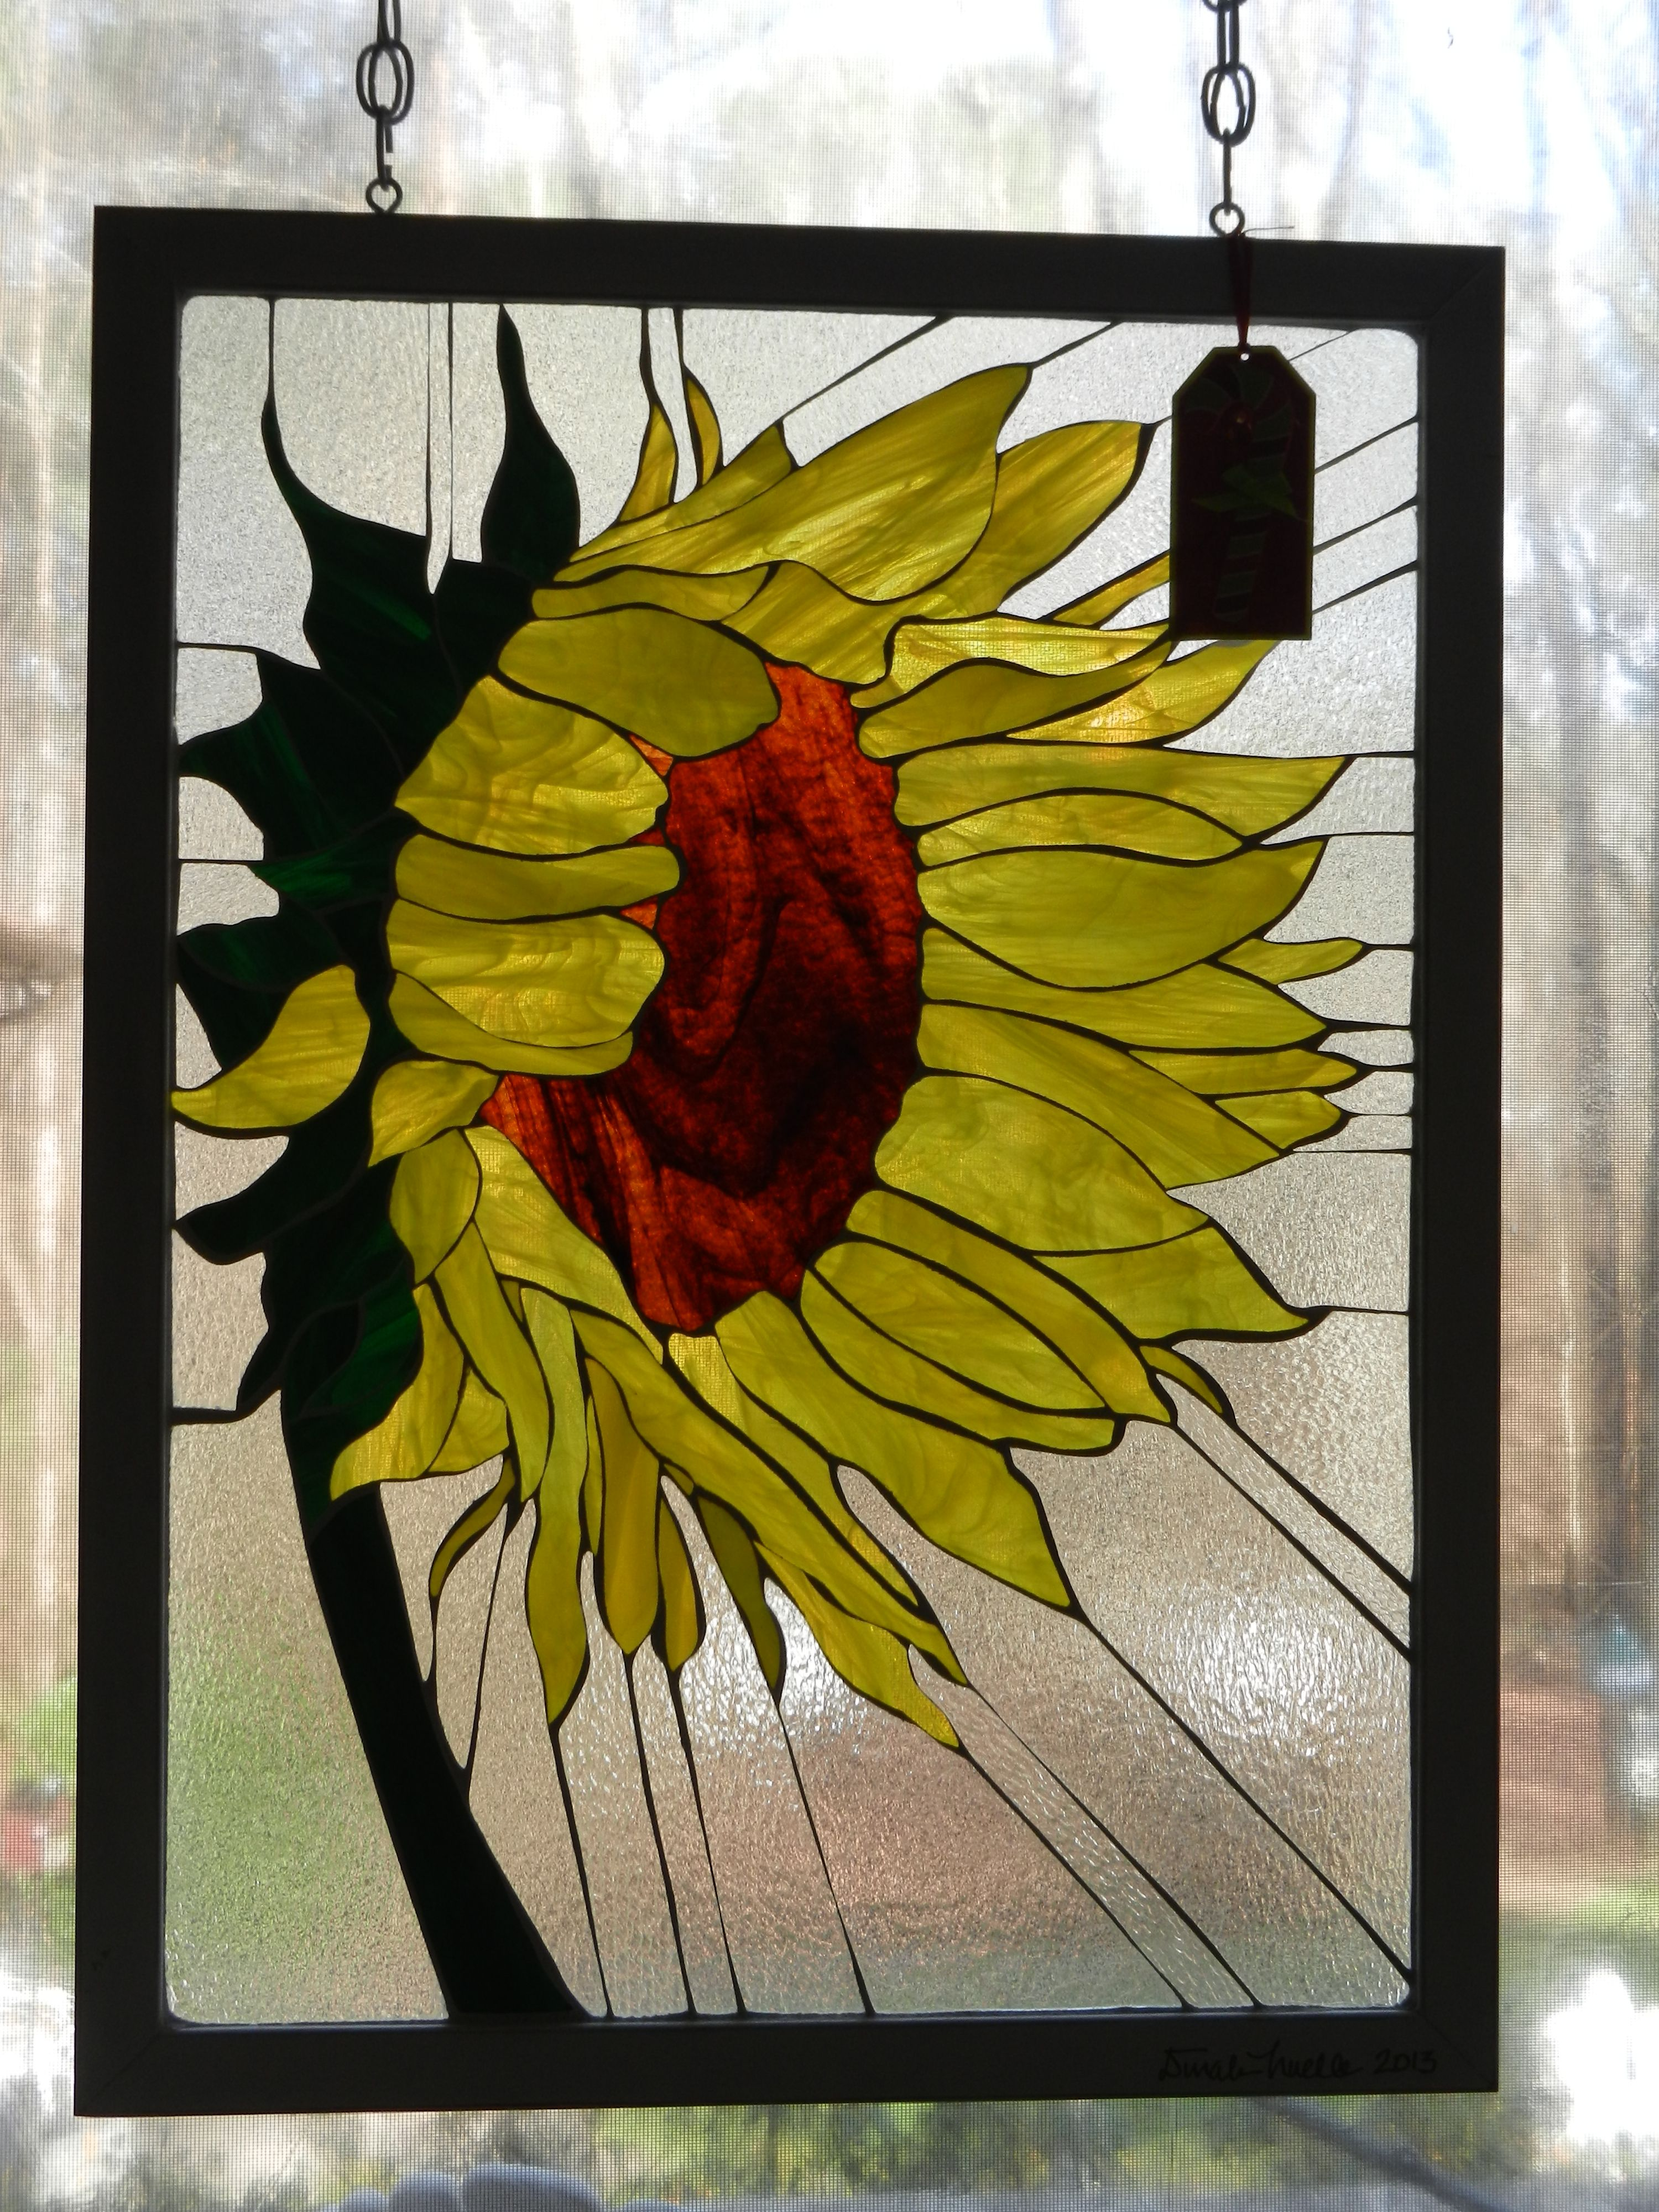 Sunflower stained glass done by my cousin Dinah.